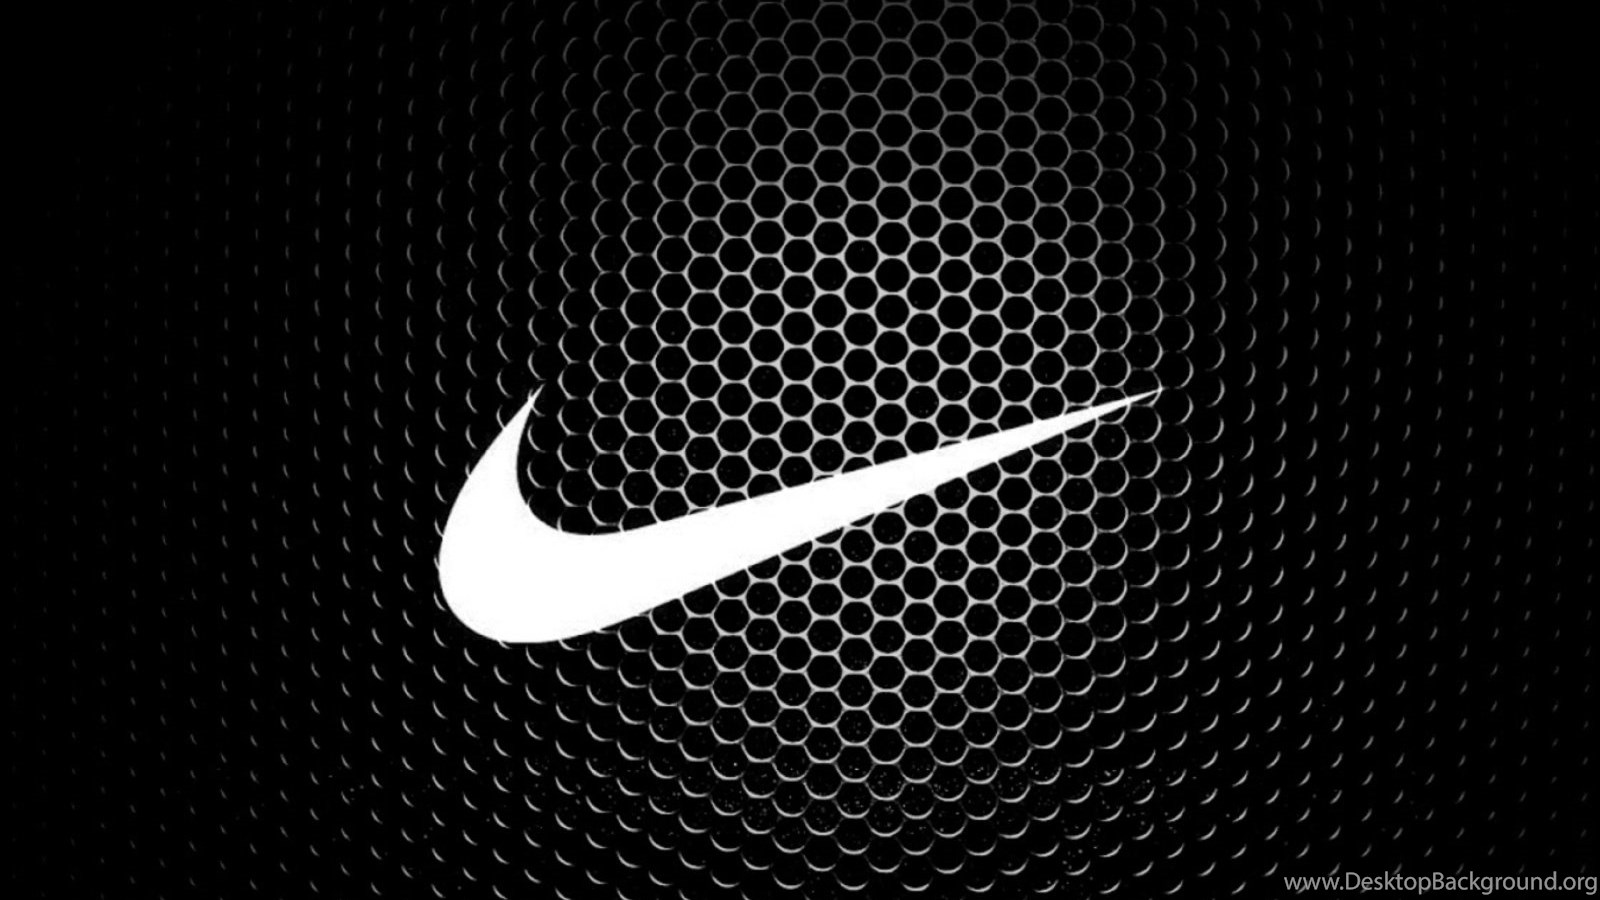 672567 nike wallpapers for samsung galaxy tab 4 8